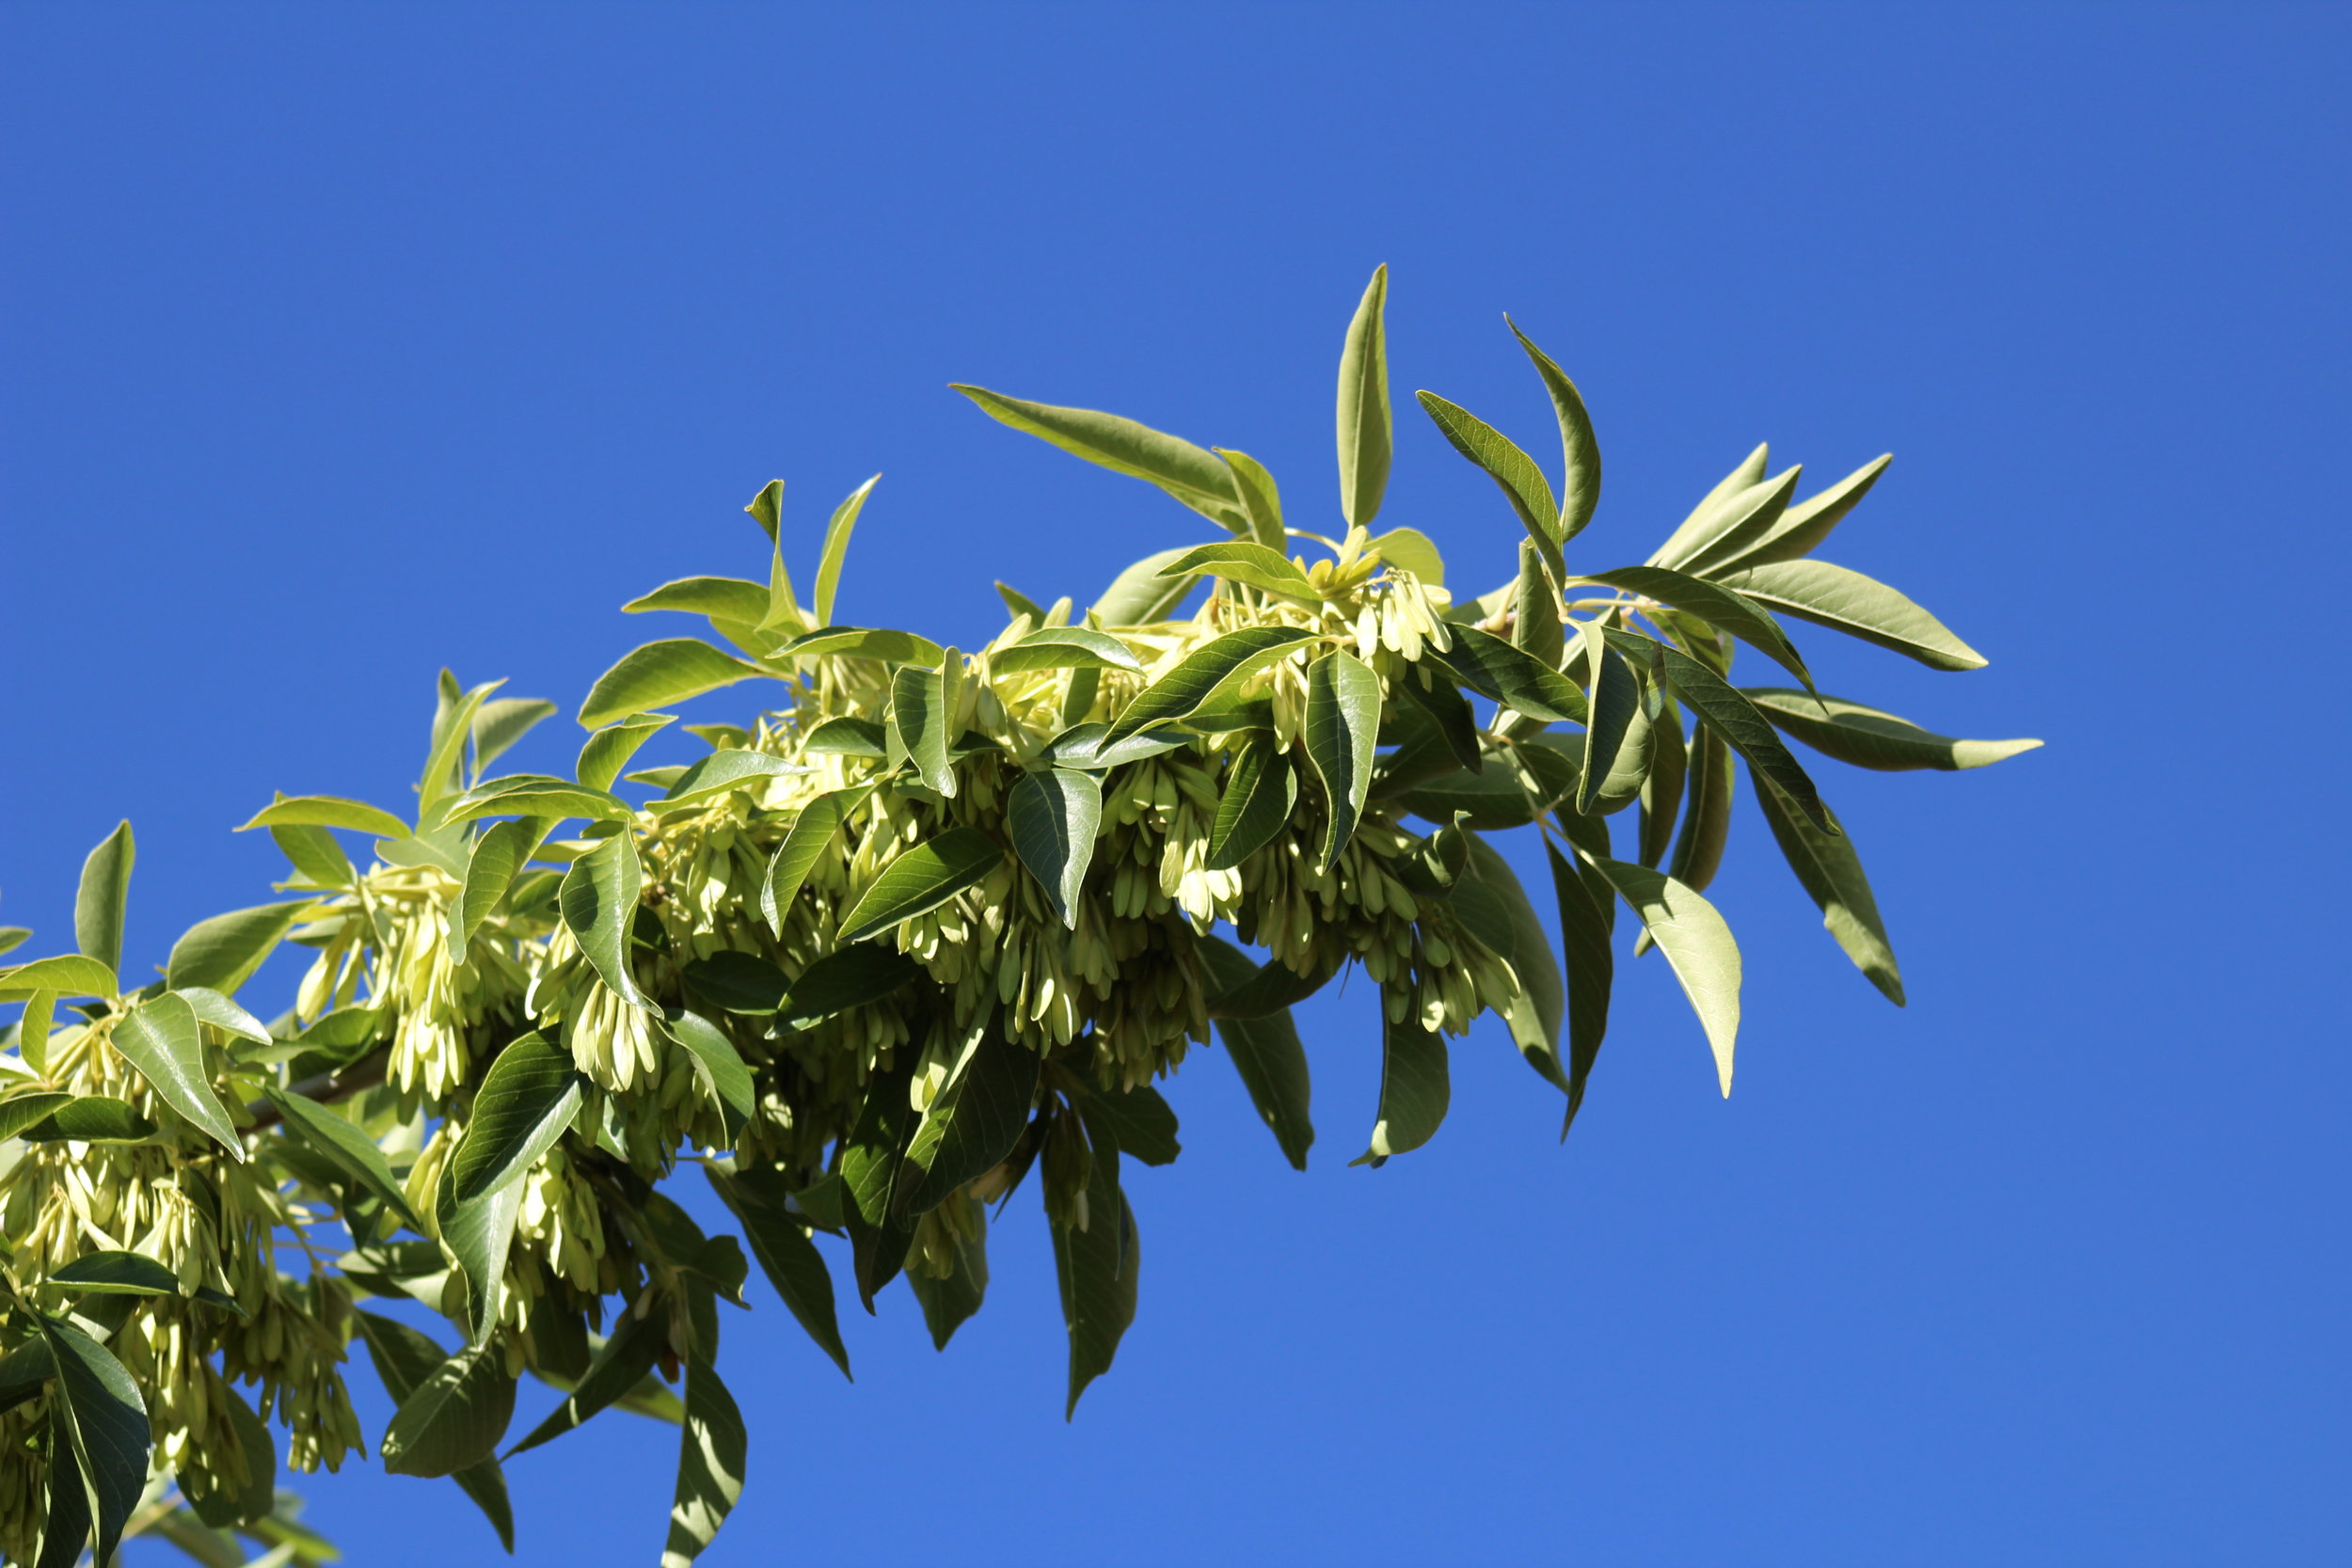 """""""   IMG_0249 Arizona Ash - Fraxinus velutina   """" by    Jon. D. Anderson    is licensed under    CC BY 2.0"""